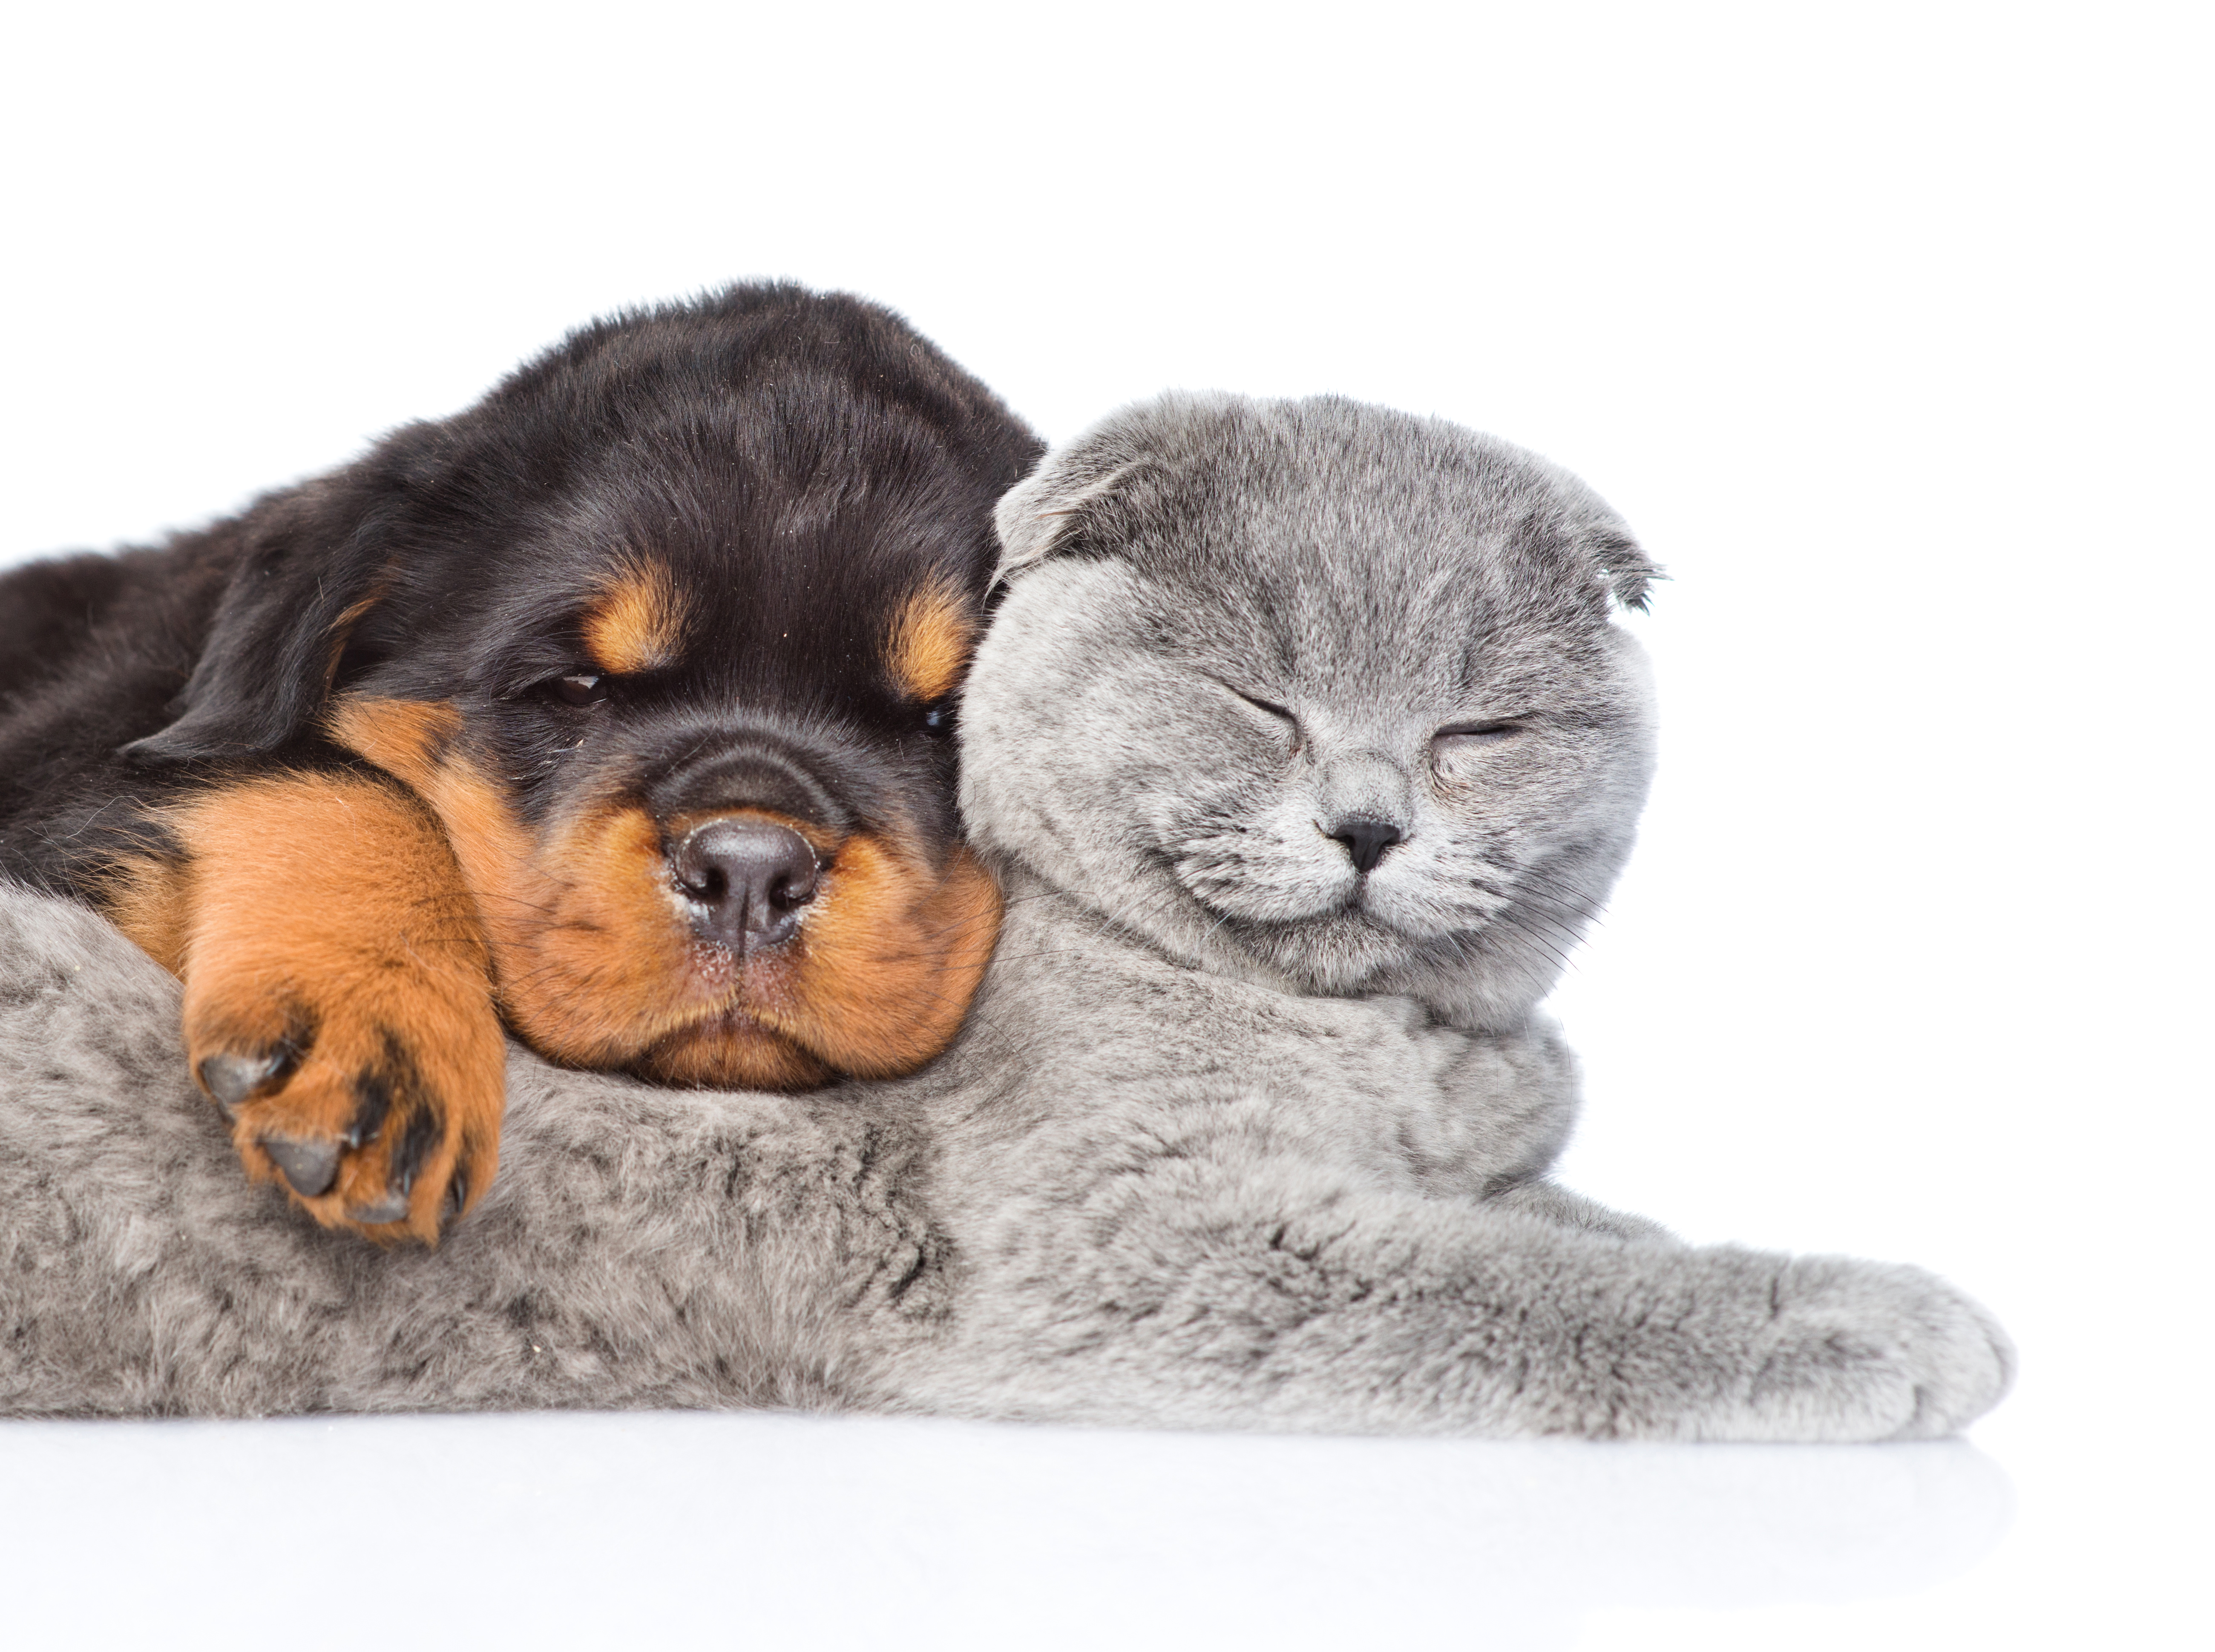 Cute Puppies And Kittens Wallpaper: Cat & Dog Wallpapers, Pictures, Images